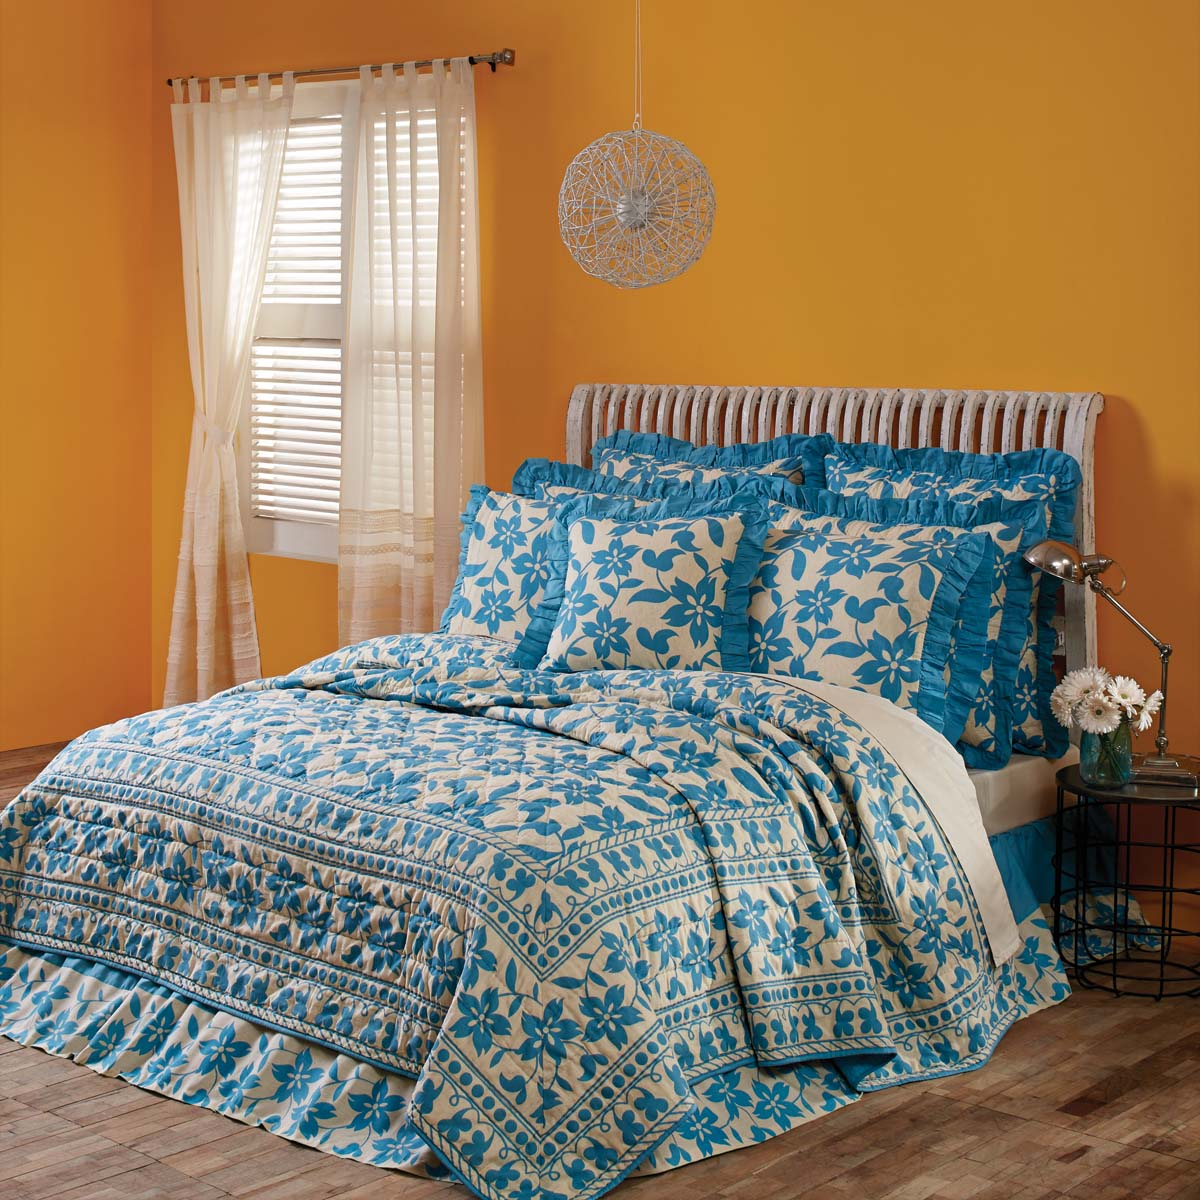 Briar Azure Luxury King Quilt 120Wx105L